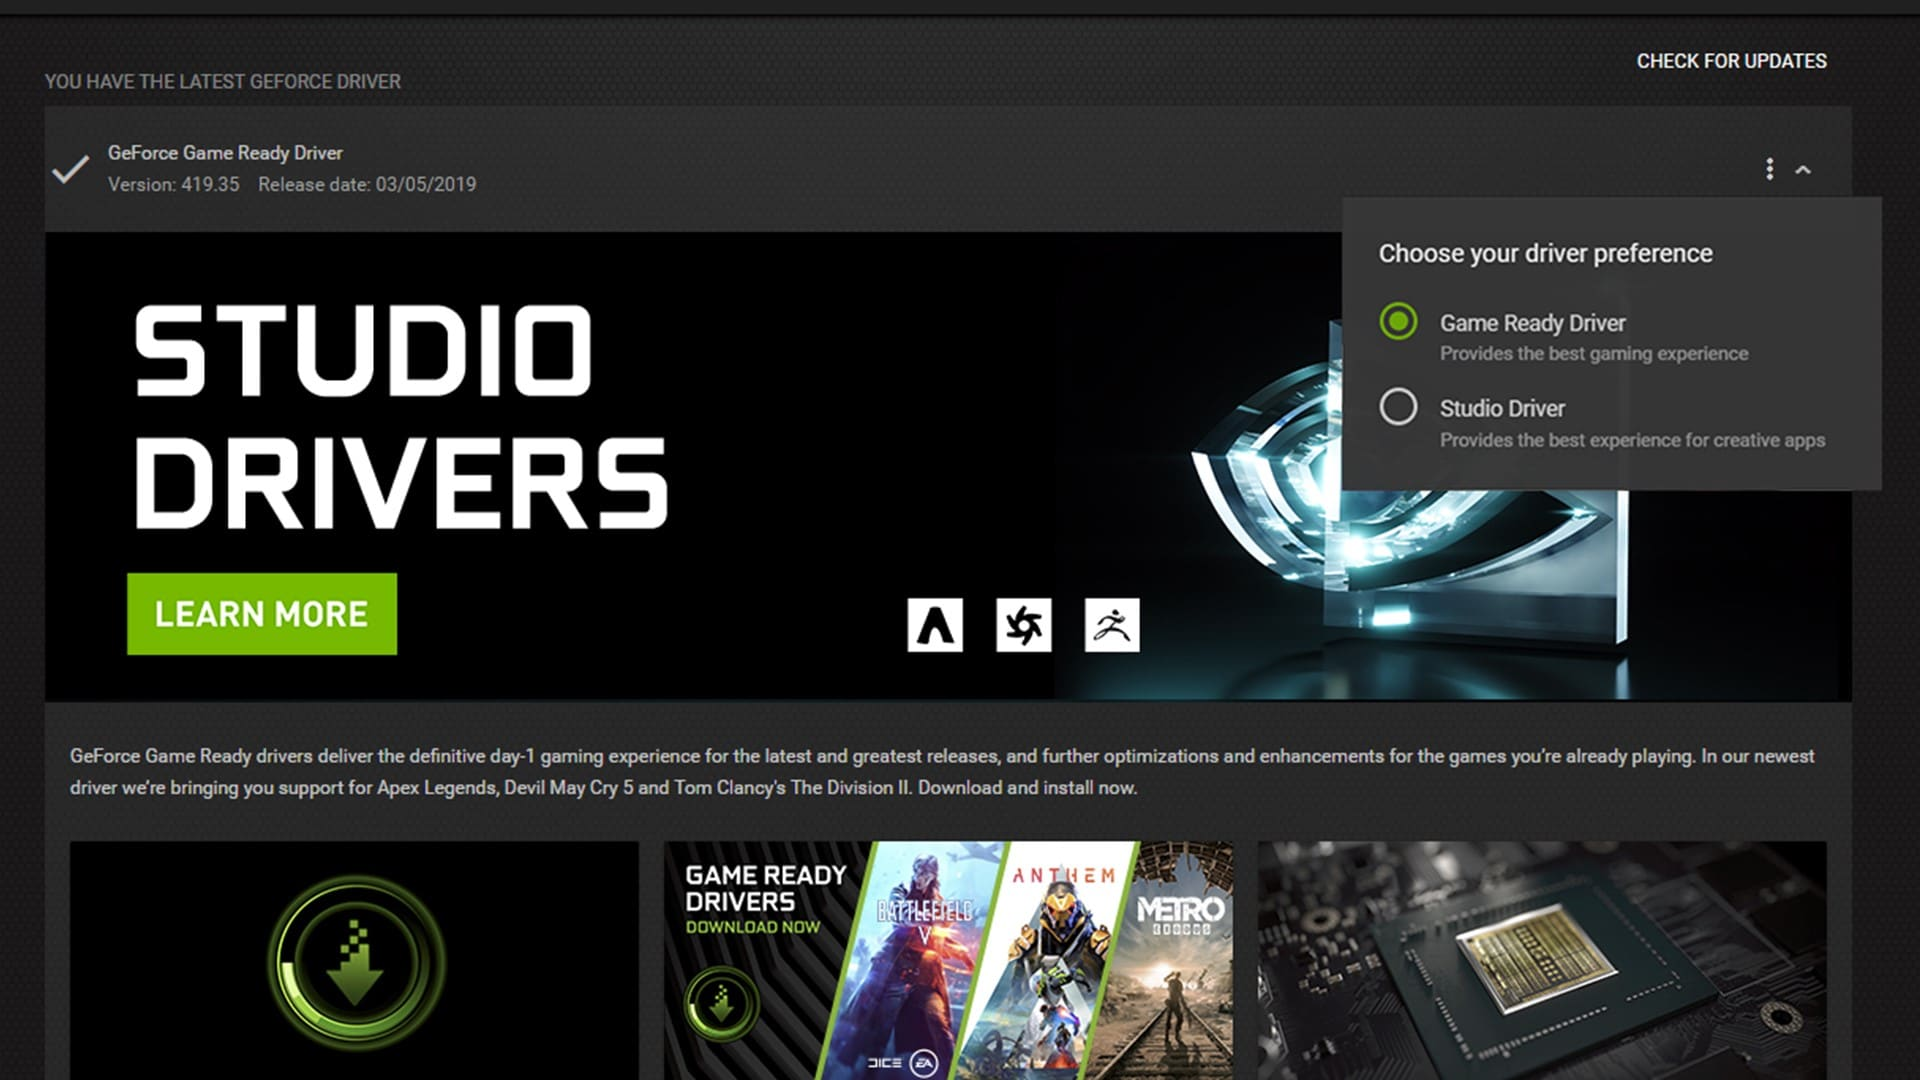 NVIDIA RTX GPUs, Studio Drivers Supercharge Creative Apps